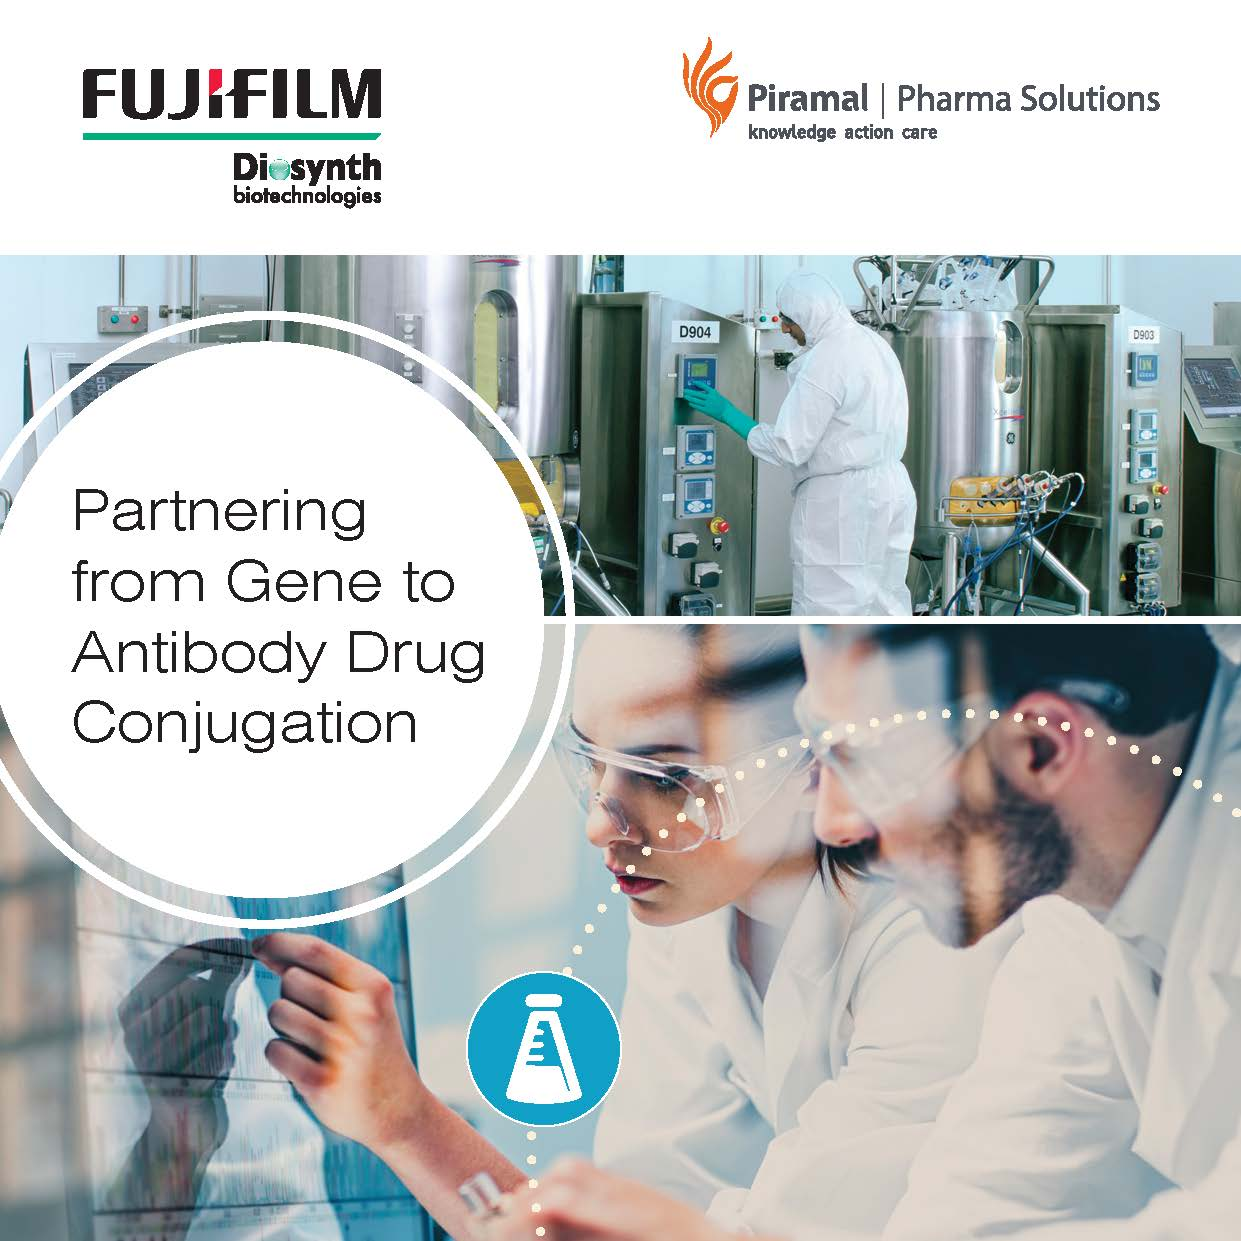 FUJIFILM and Piramal partnership image